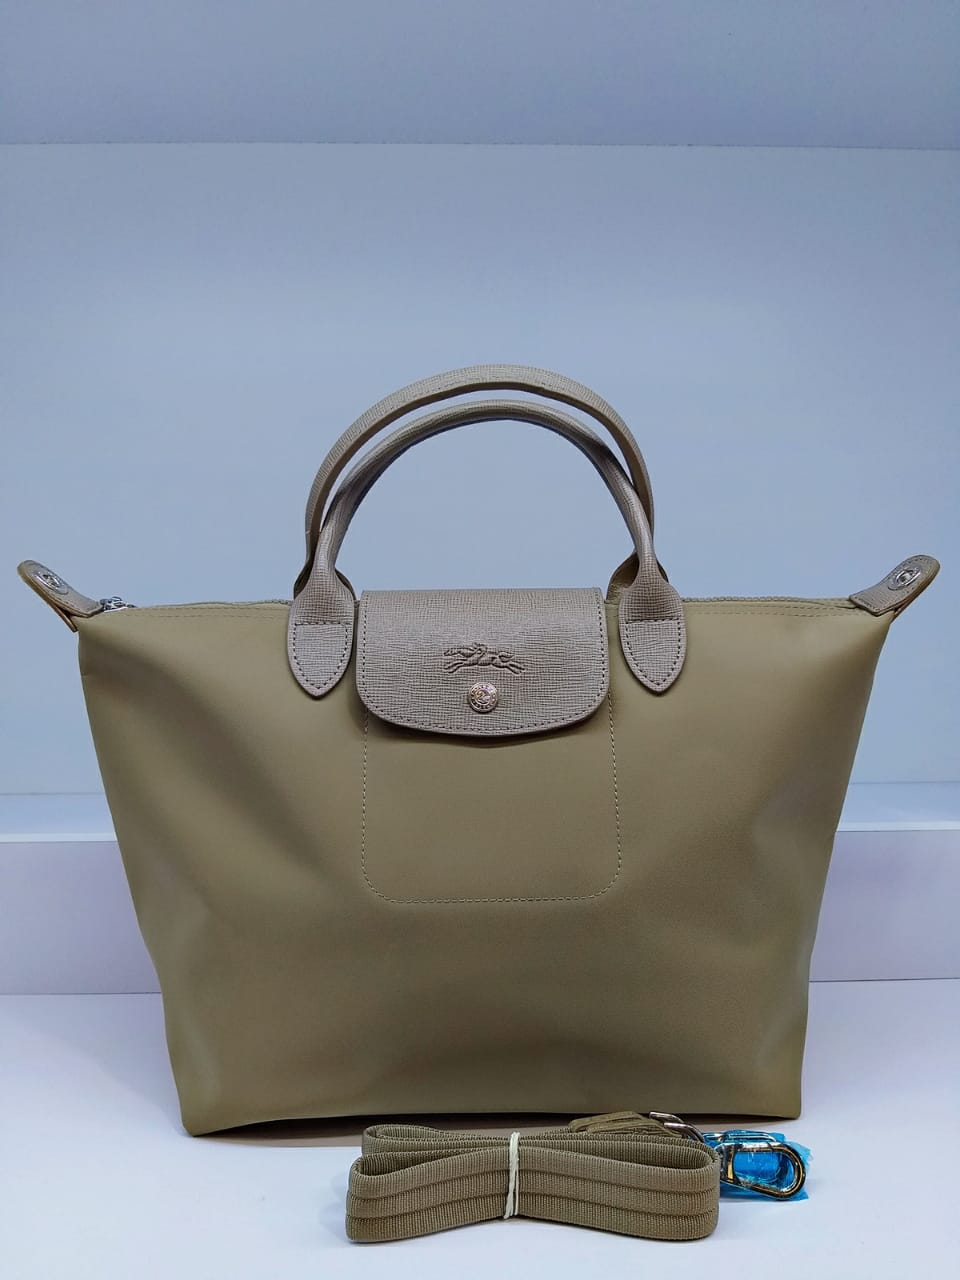 Longchamp Designer Tote Bag - Liquidation Cart